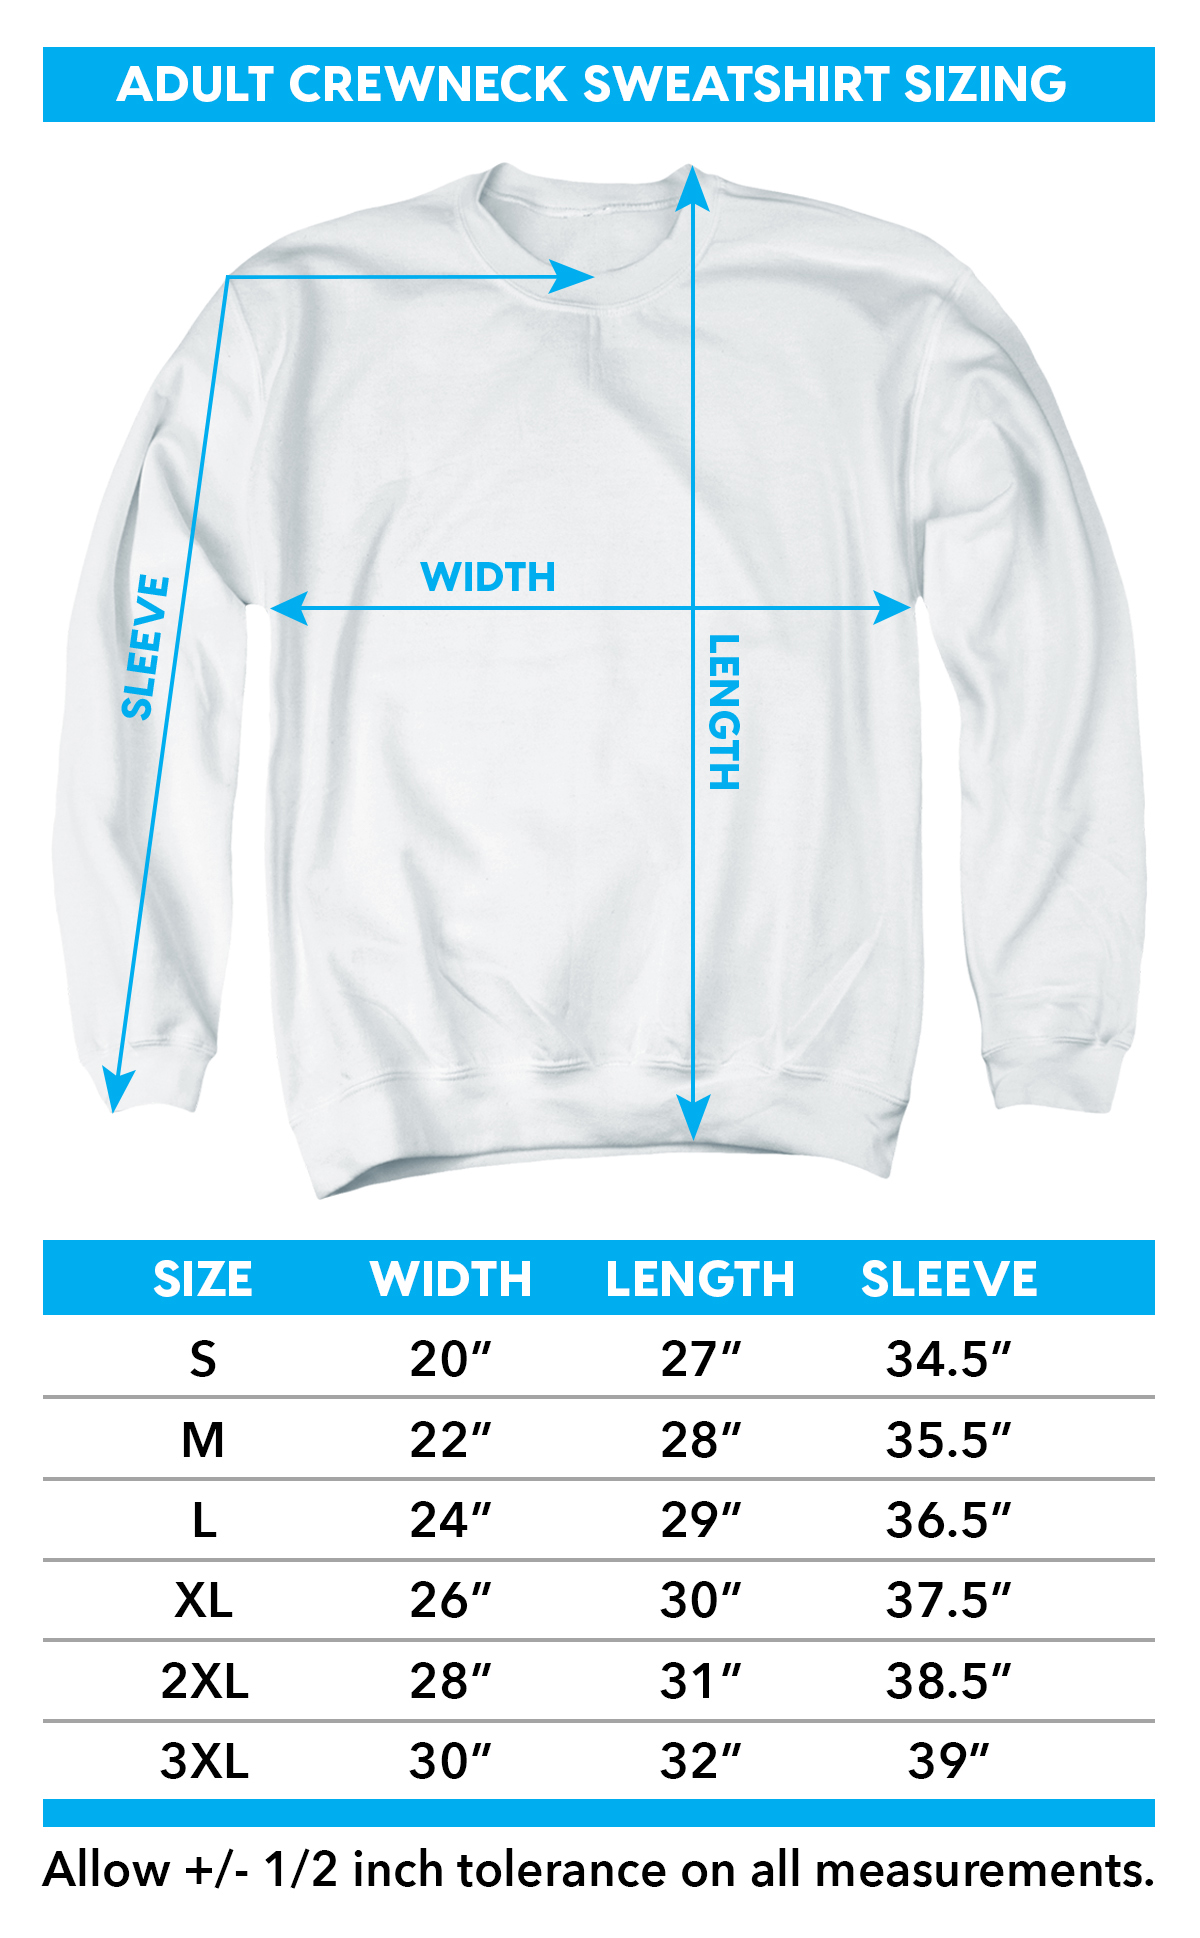 Sizing chart for the Family Guy What's Up crewneck sweatshirt